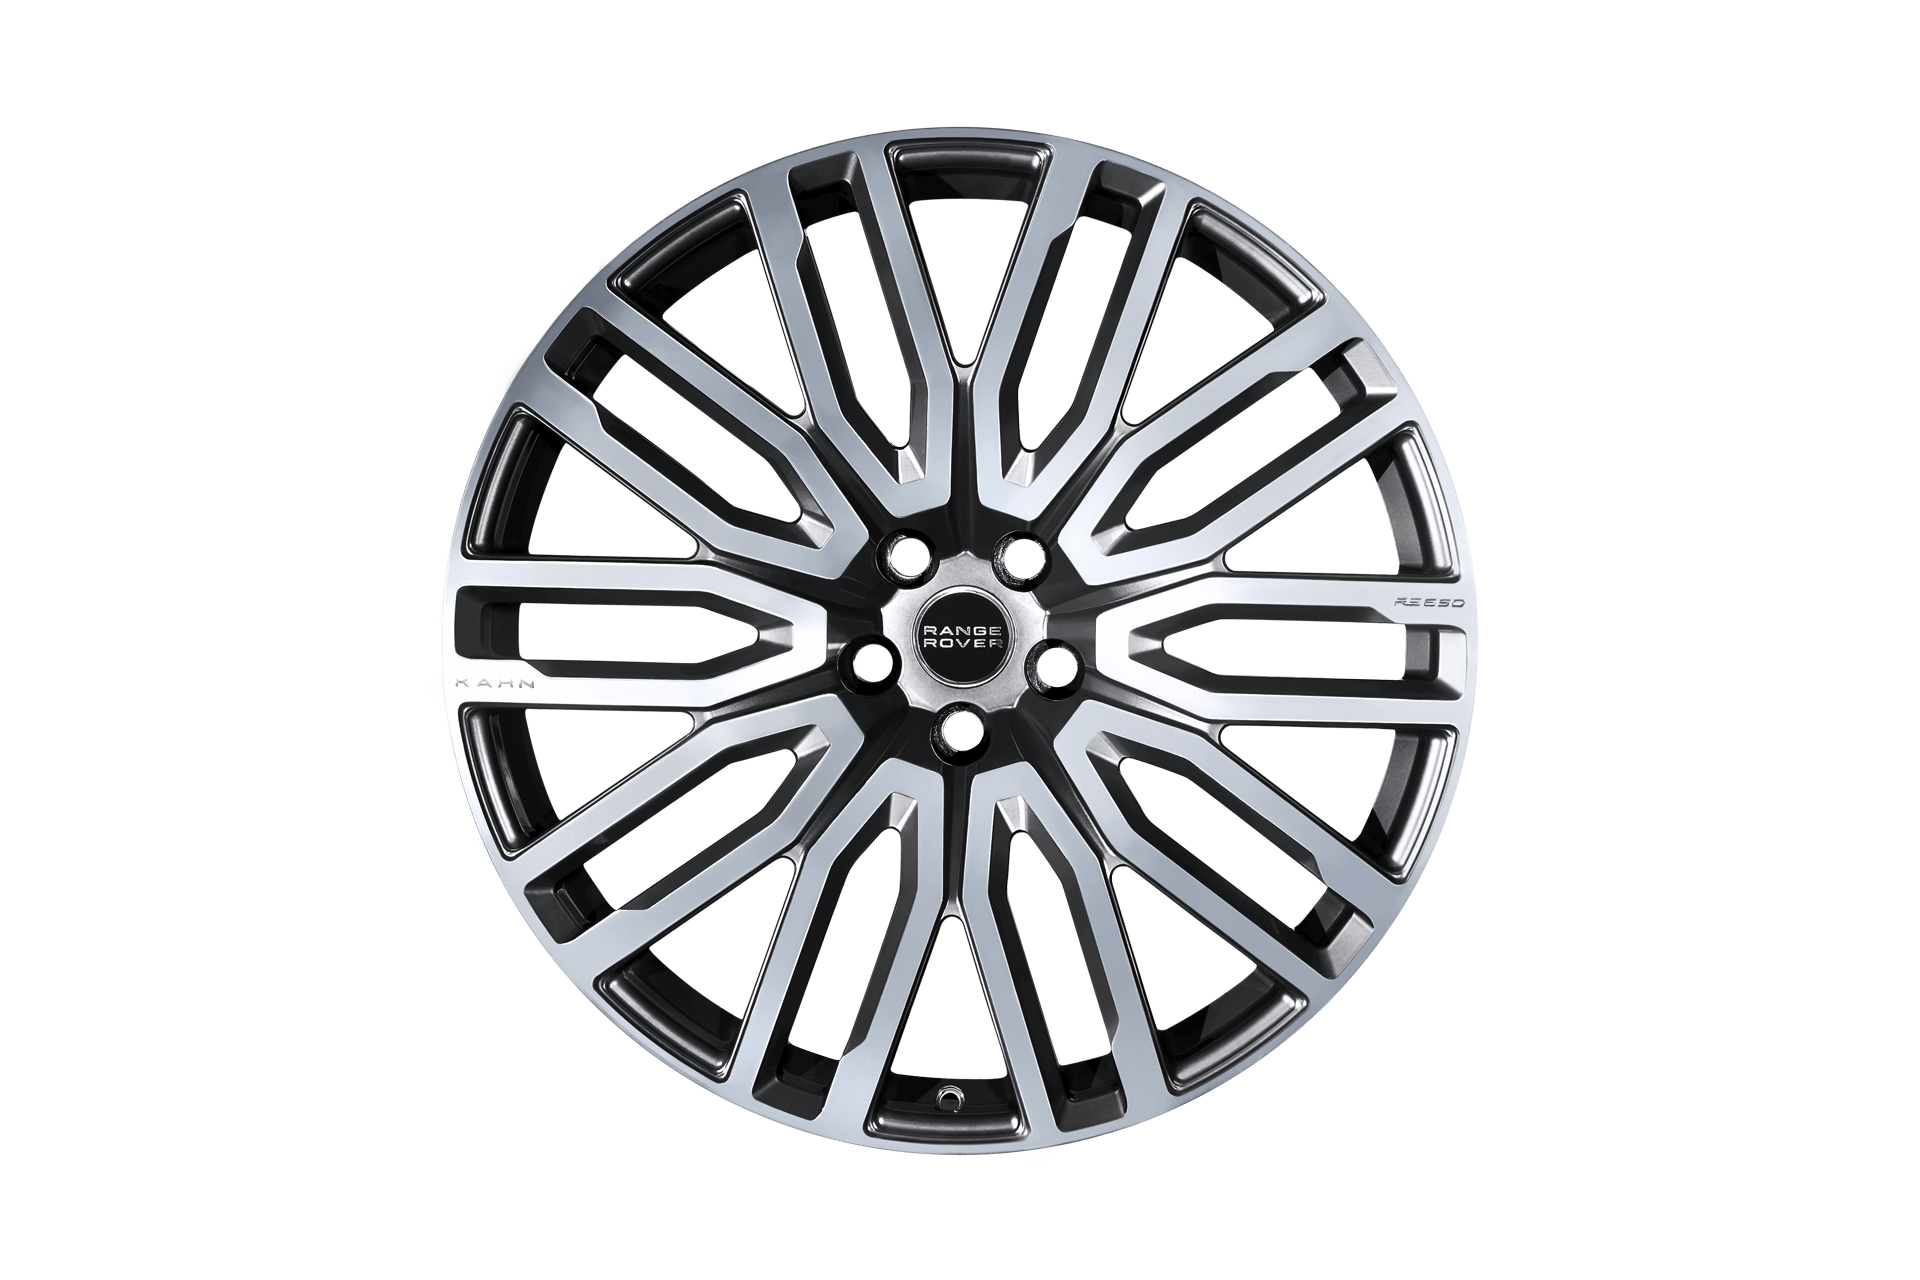 Range Rover (2012–2018) Pace Car RS650 Forged Light Alloy Wheels